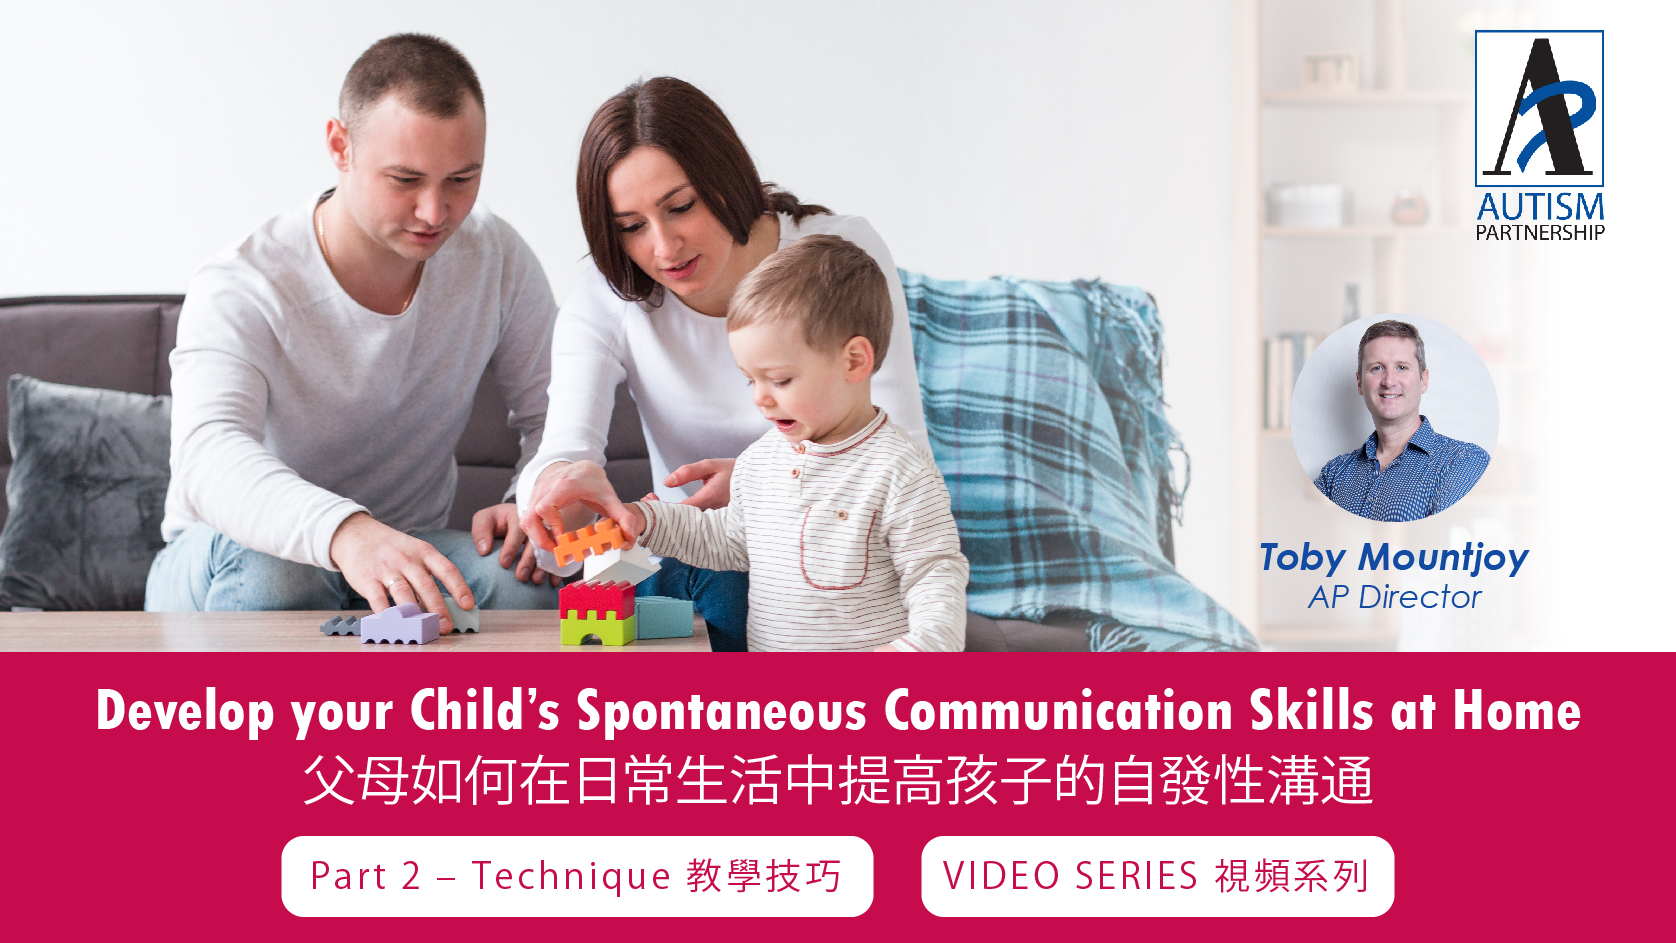 develop-your-childs-spontaneous-communication-skills-at-home_p2_tn1-04